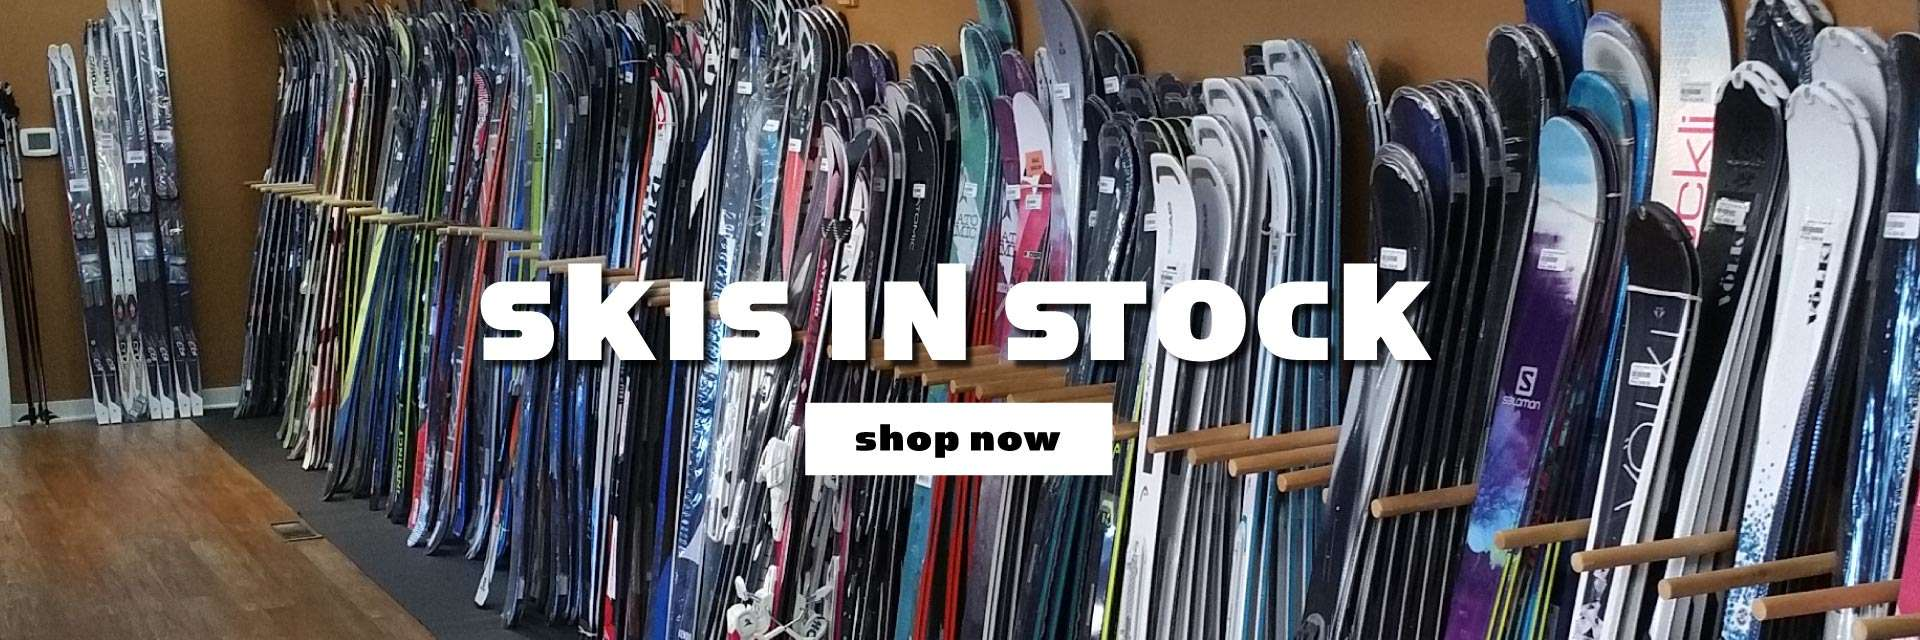 Atomic Skis, Fisher Skis and more at World Cup Ski - Shop Winter Sports now